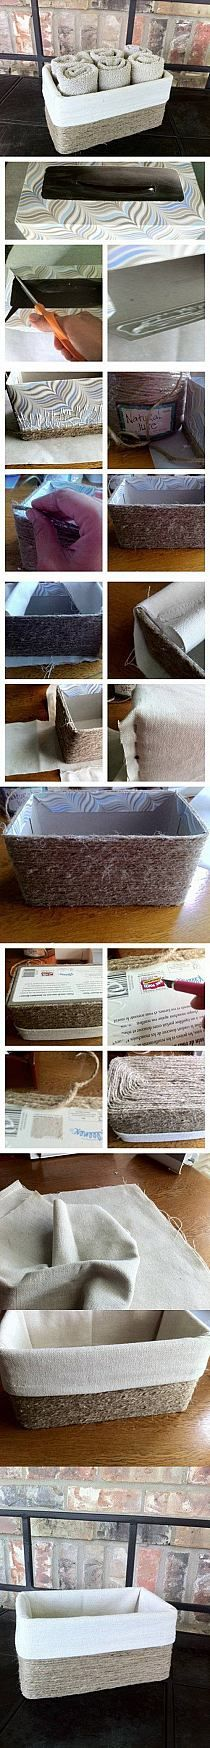 DIY Jute Basket from Cardboard Box DIY Projects | Usefu…